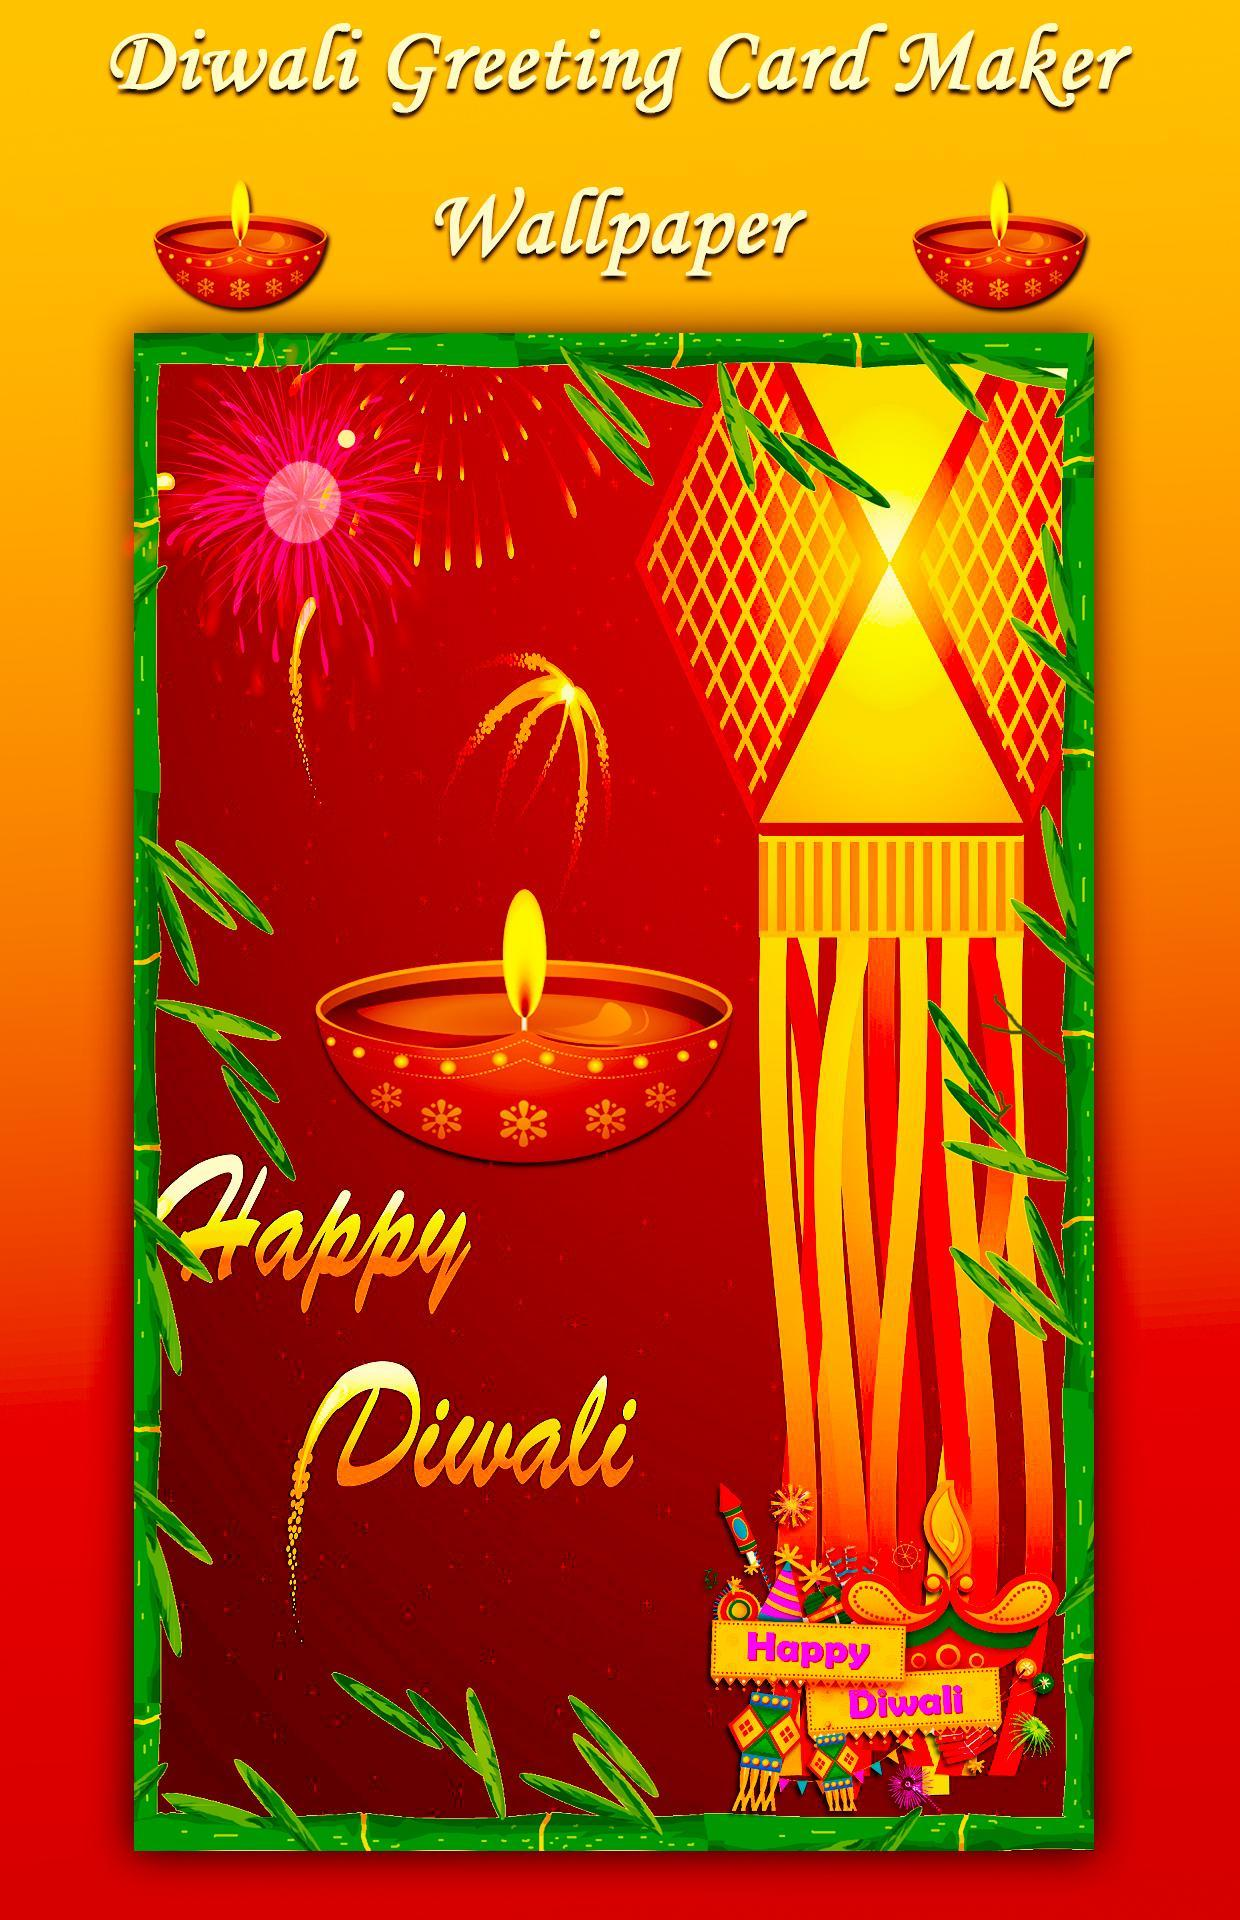 Diwali Greetings Card Maker for Android - APK Download